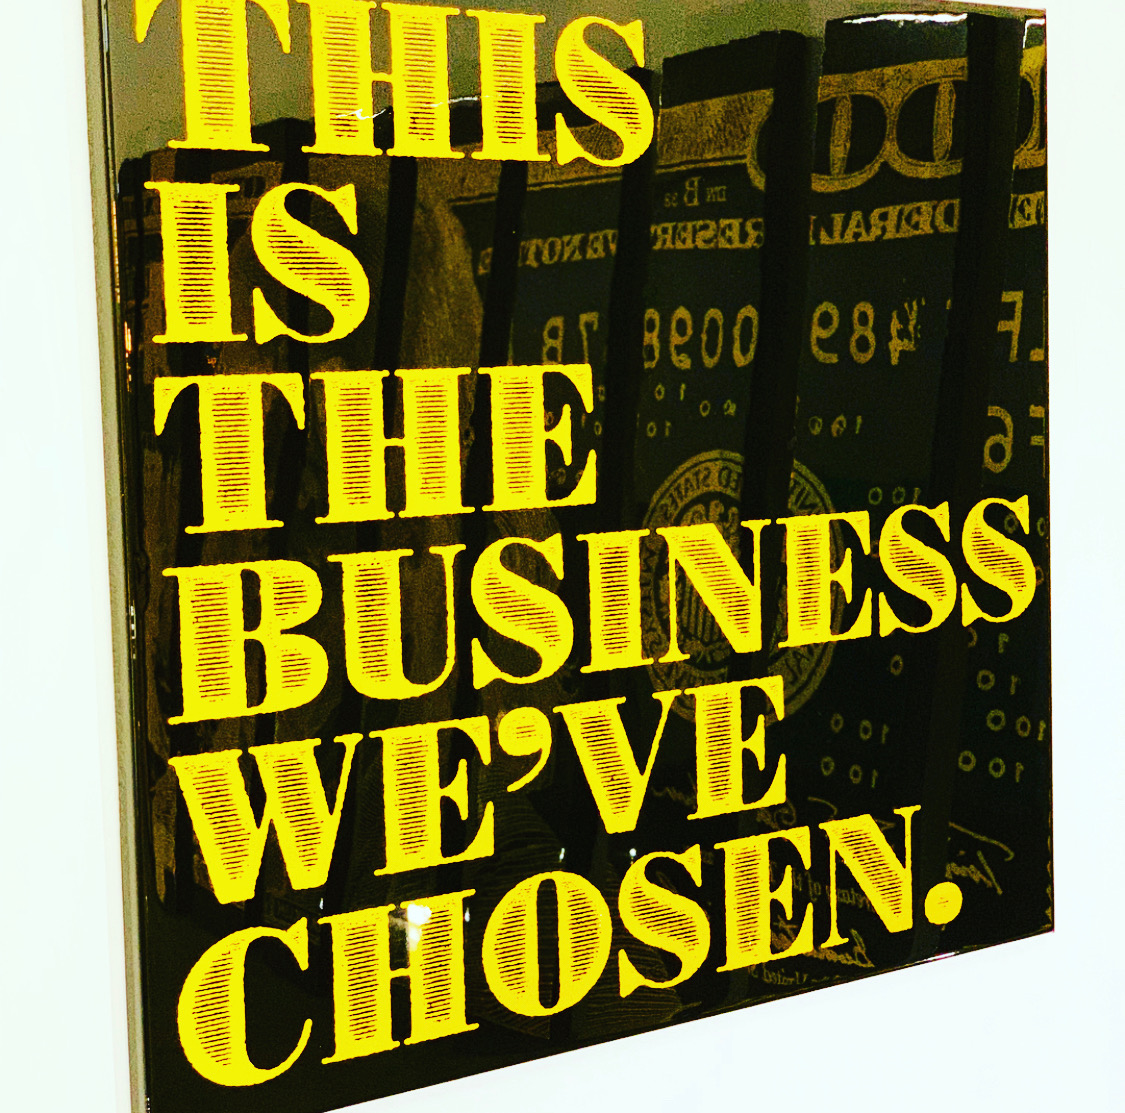 This Is The Business We've Chosen 2 by Mister E